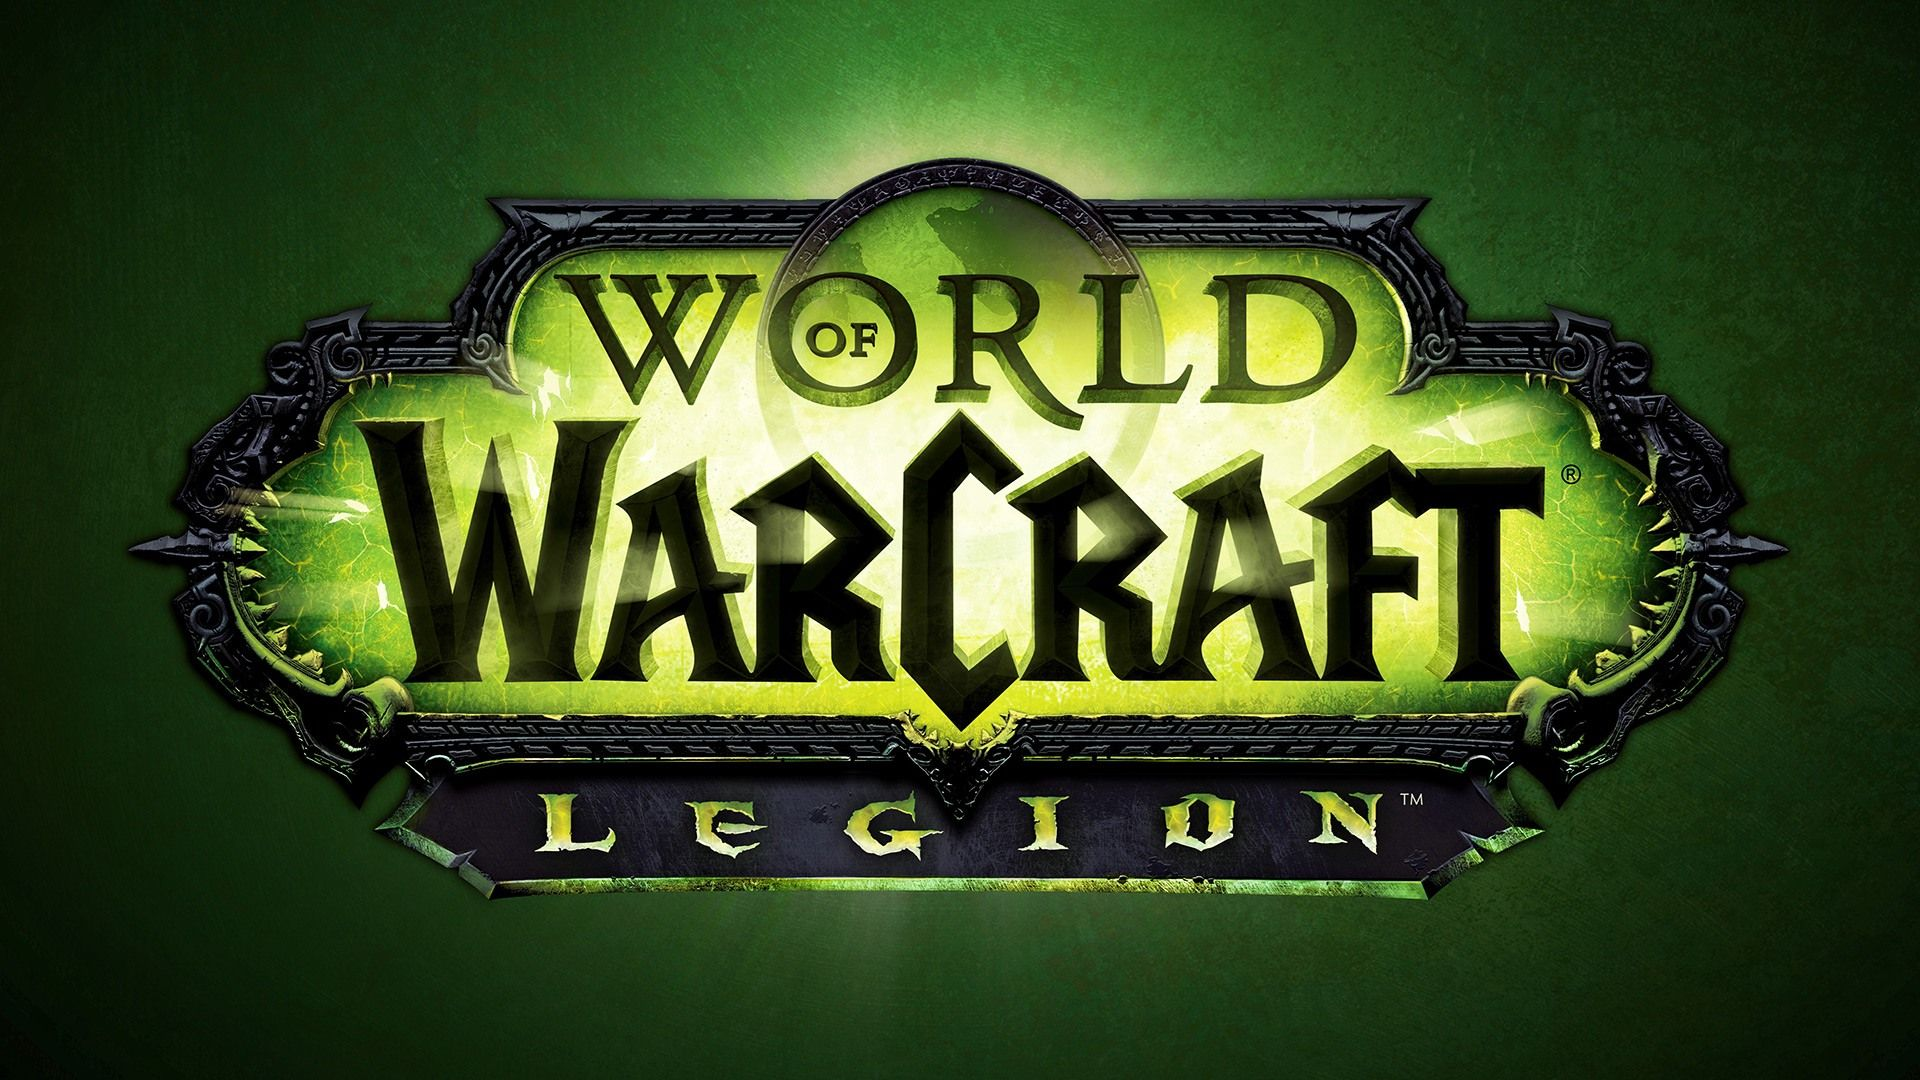 World Of Warcraft Guide Wow Of Warcraft World Of Warcraft Legion Lets Play